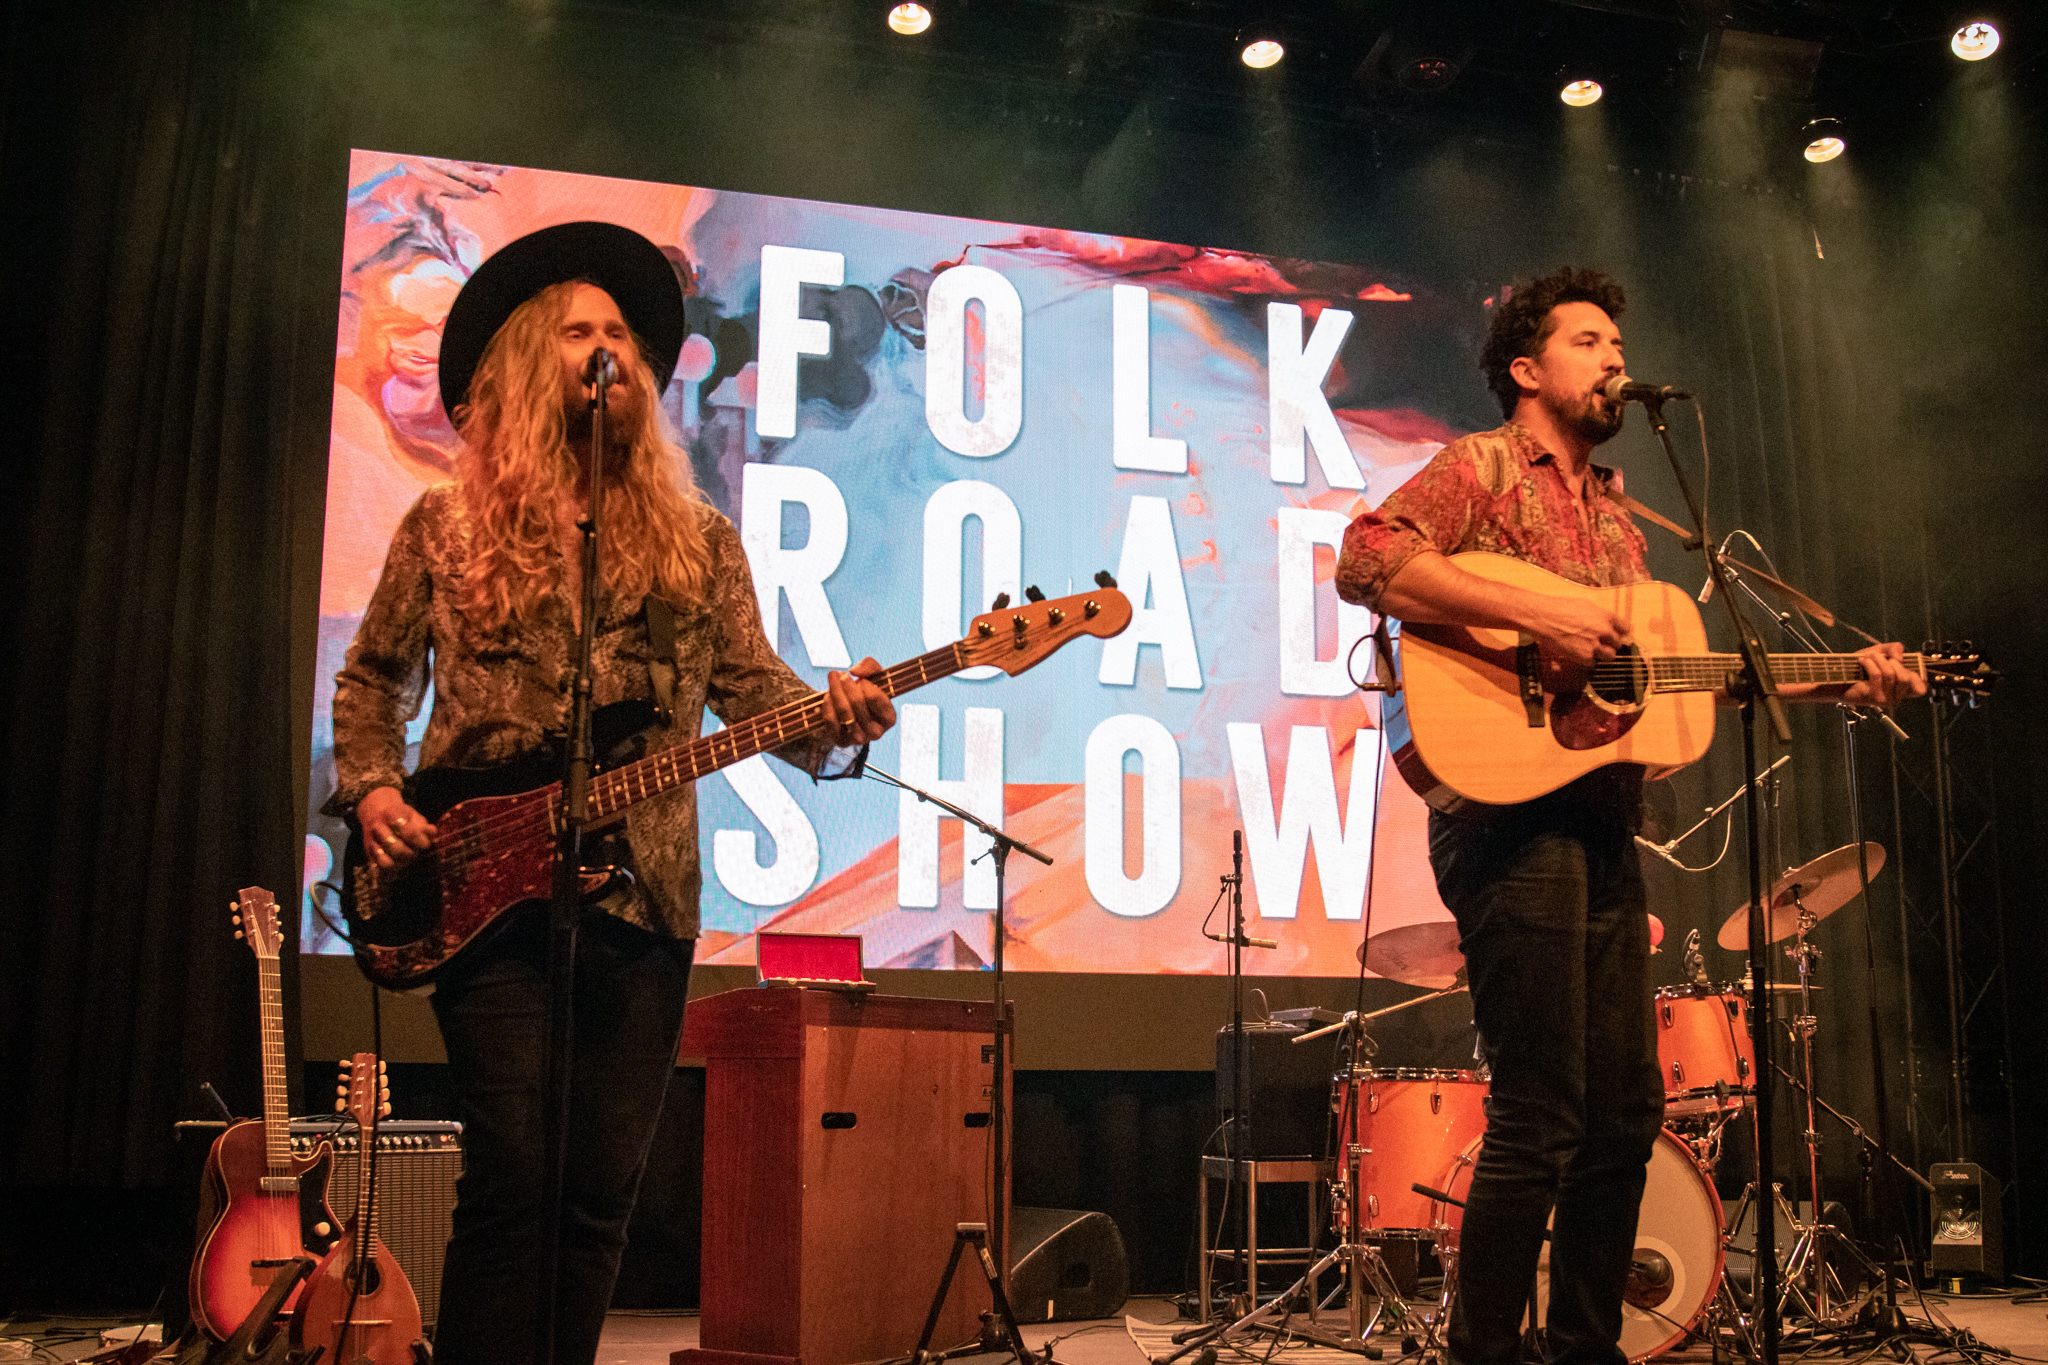 FolfRoadShow-QFactory-Amsterdam_NL-20191114-SylviaWijnands-005